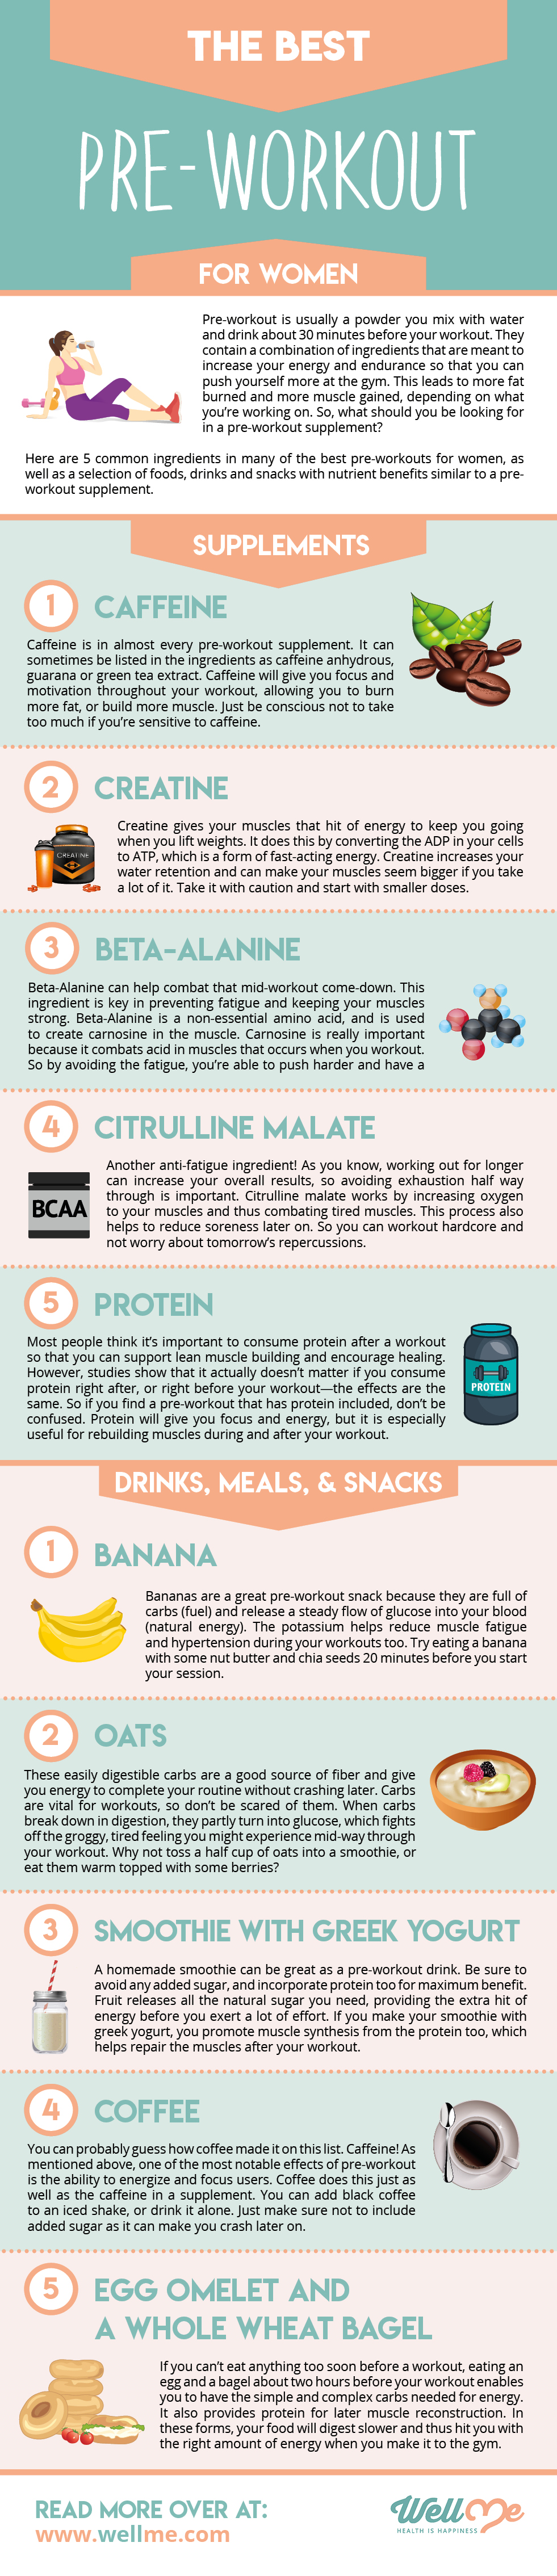 The Best Pre-Workout For Women Infographic